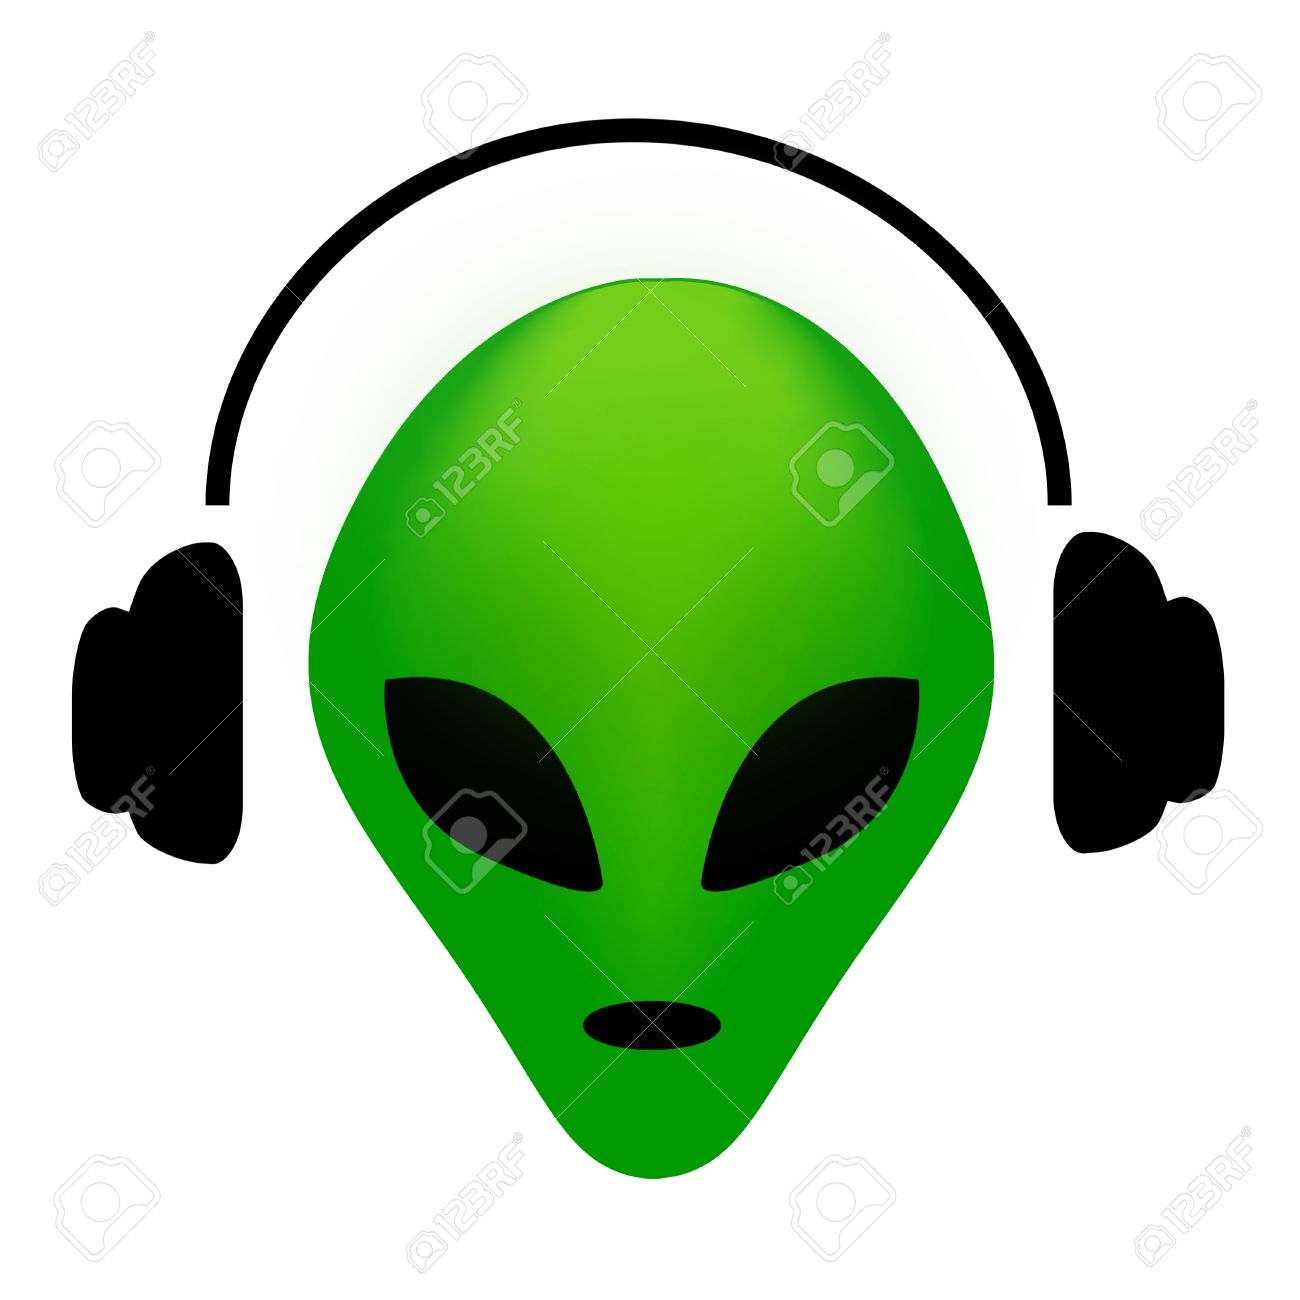 Green Alien Face Wearing Earphone Music Lover Alien Clipart Royalty Free Cliparts Vectors And Stock Illustration Image 38529377 Over 6,760 clipart alien pictures to choose from, with no signup needed. green alien face wearing earphone music lover alien clipart